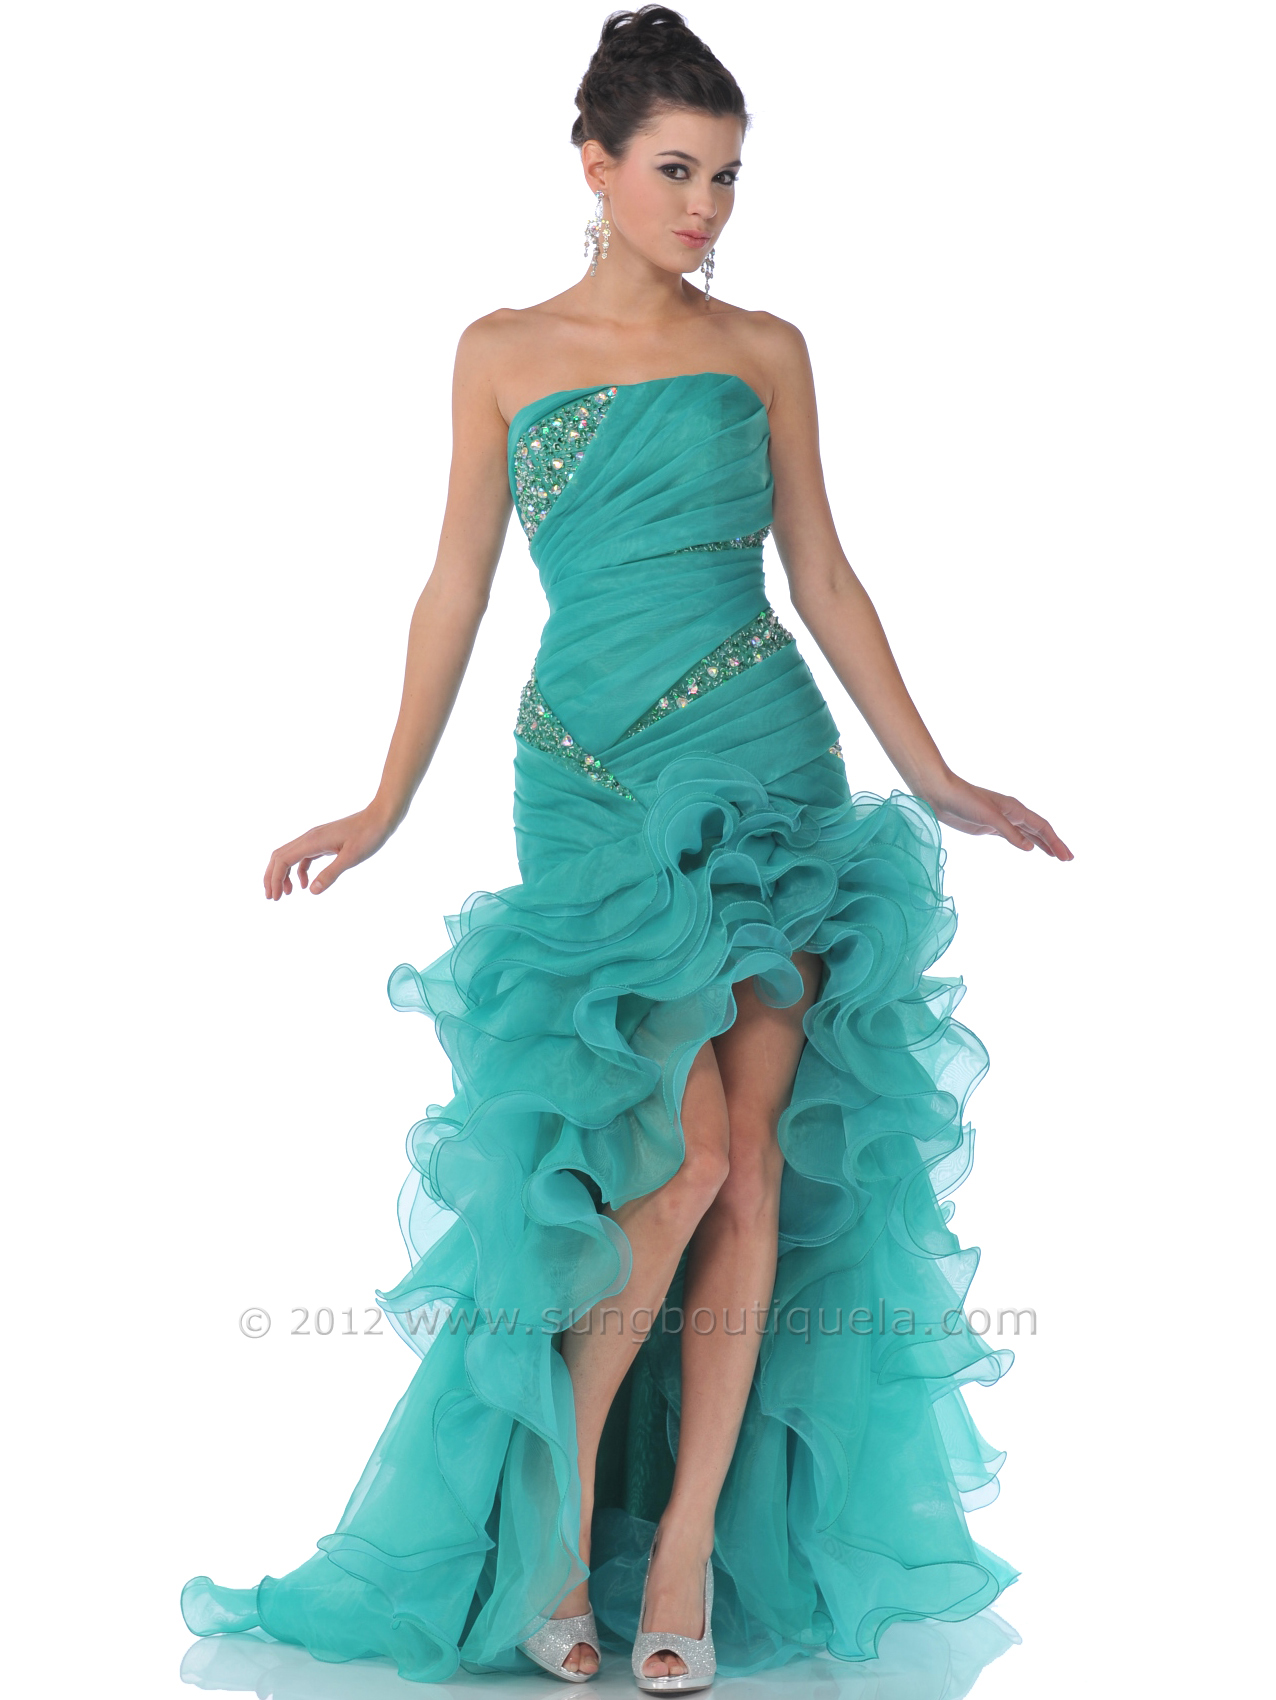 Frilly Prom Dress